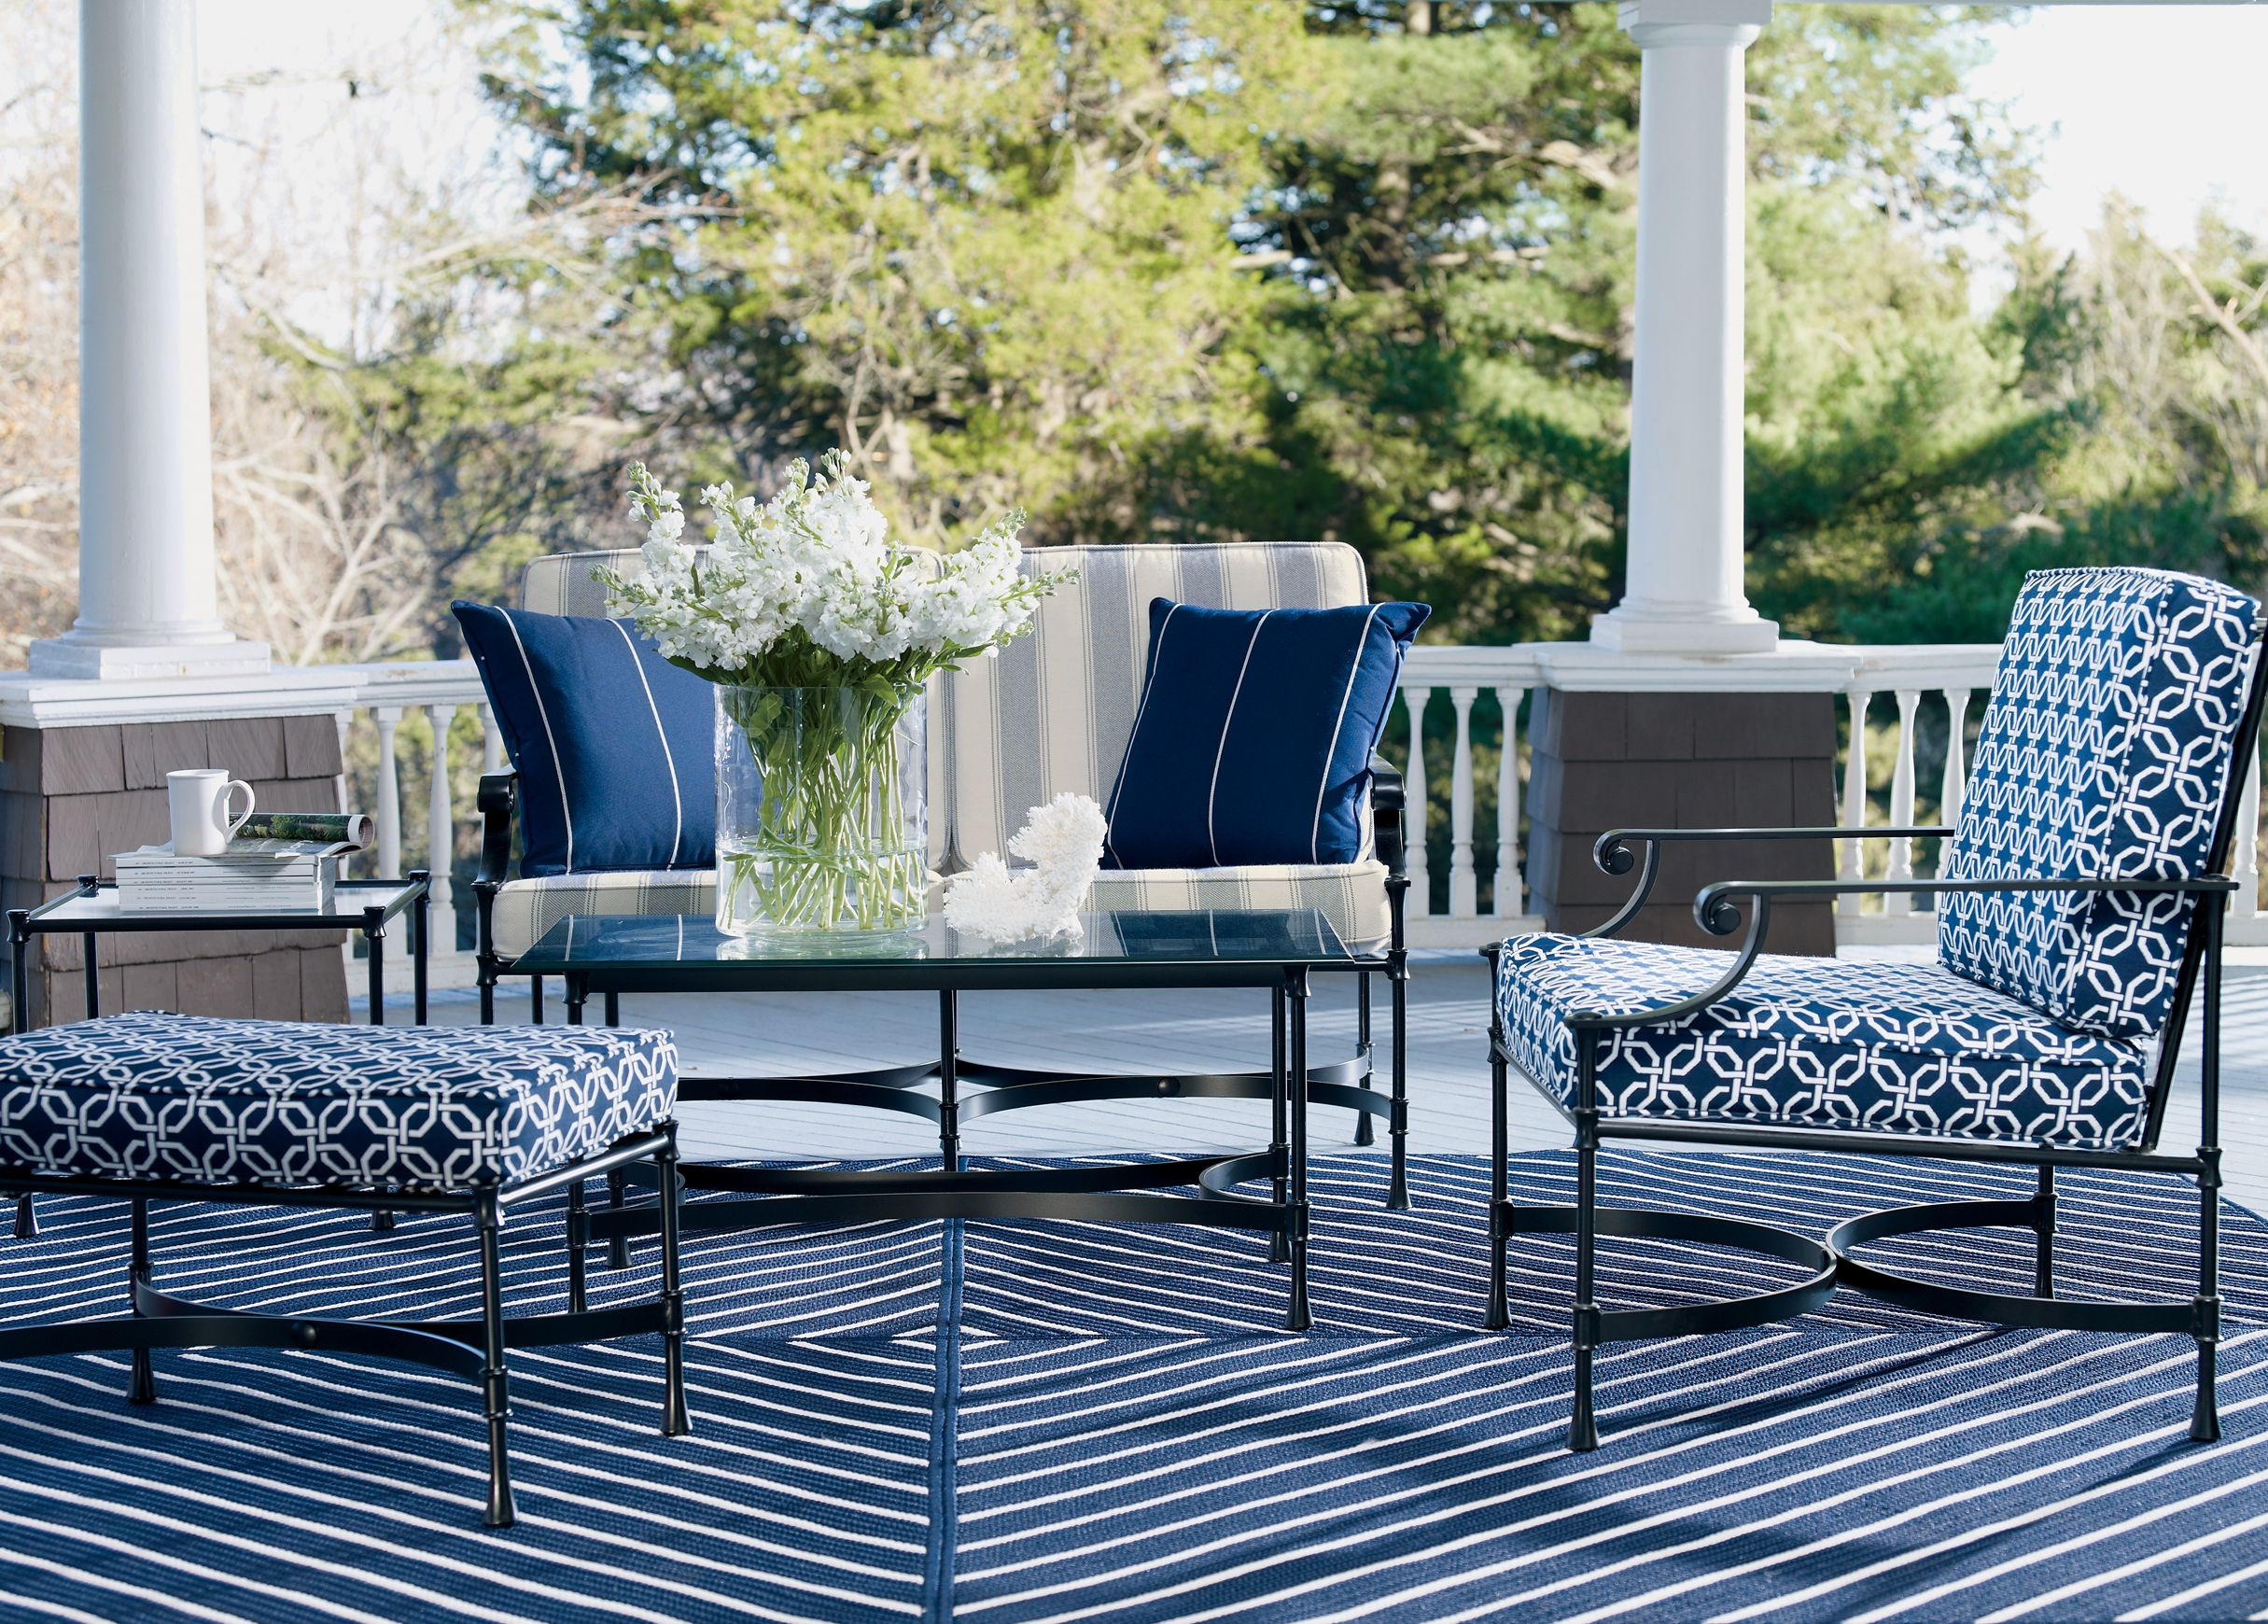 25 Best Patio / Outdoor Spaces Images On Pinterest | Patio Ideas, Backyard  Ideas And Garden Ideas